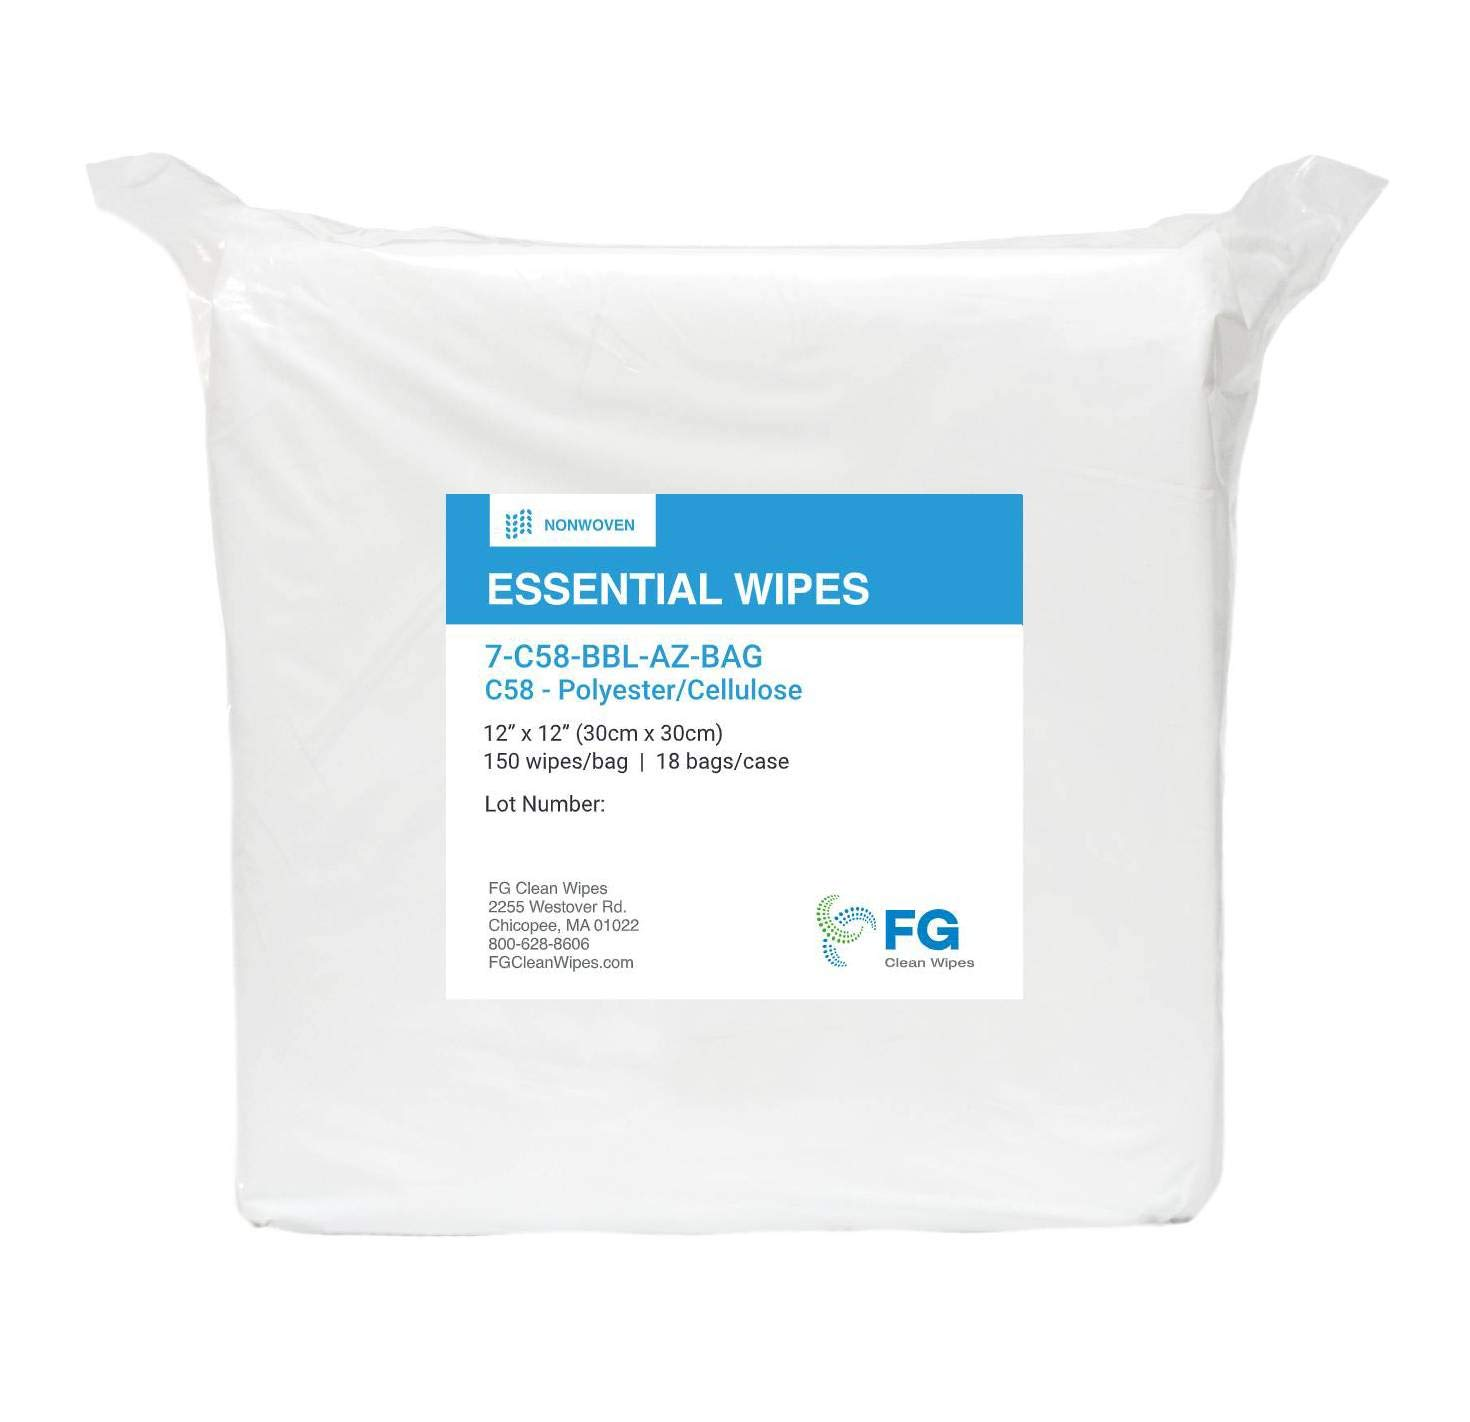 """FG Clean Wipes 12""""x12"""" C58 Polyester Cellulose Wipes -1 Bag - 150 Wipes/Bag"""